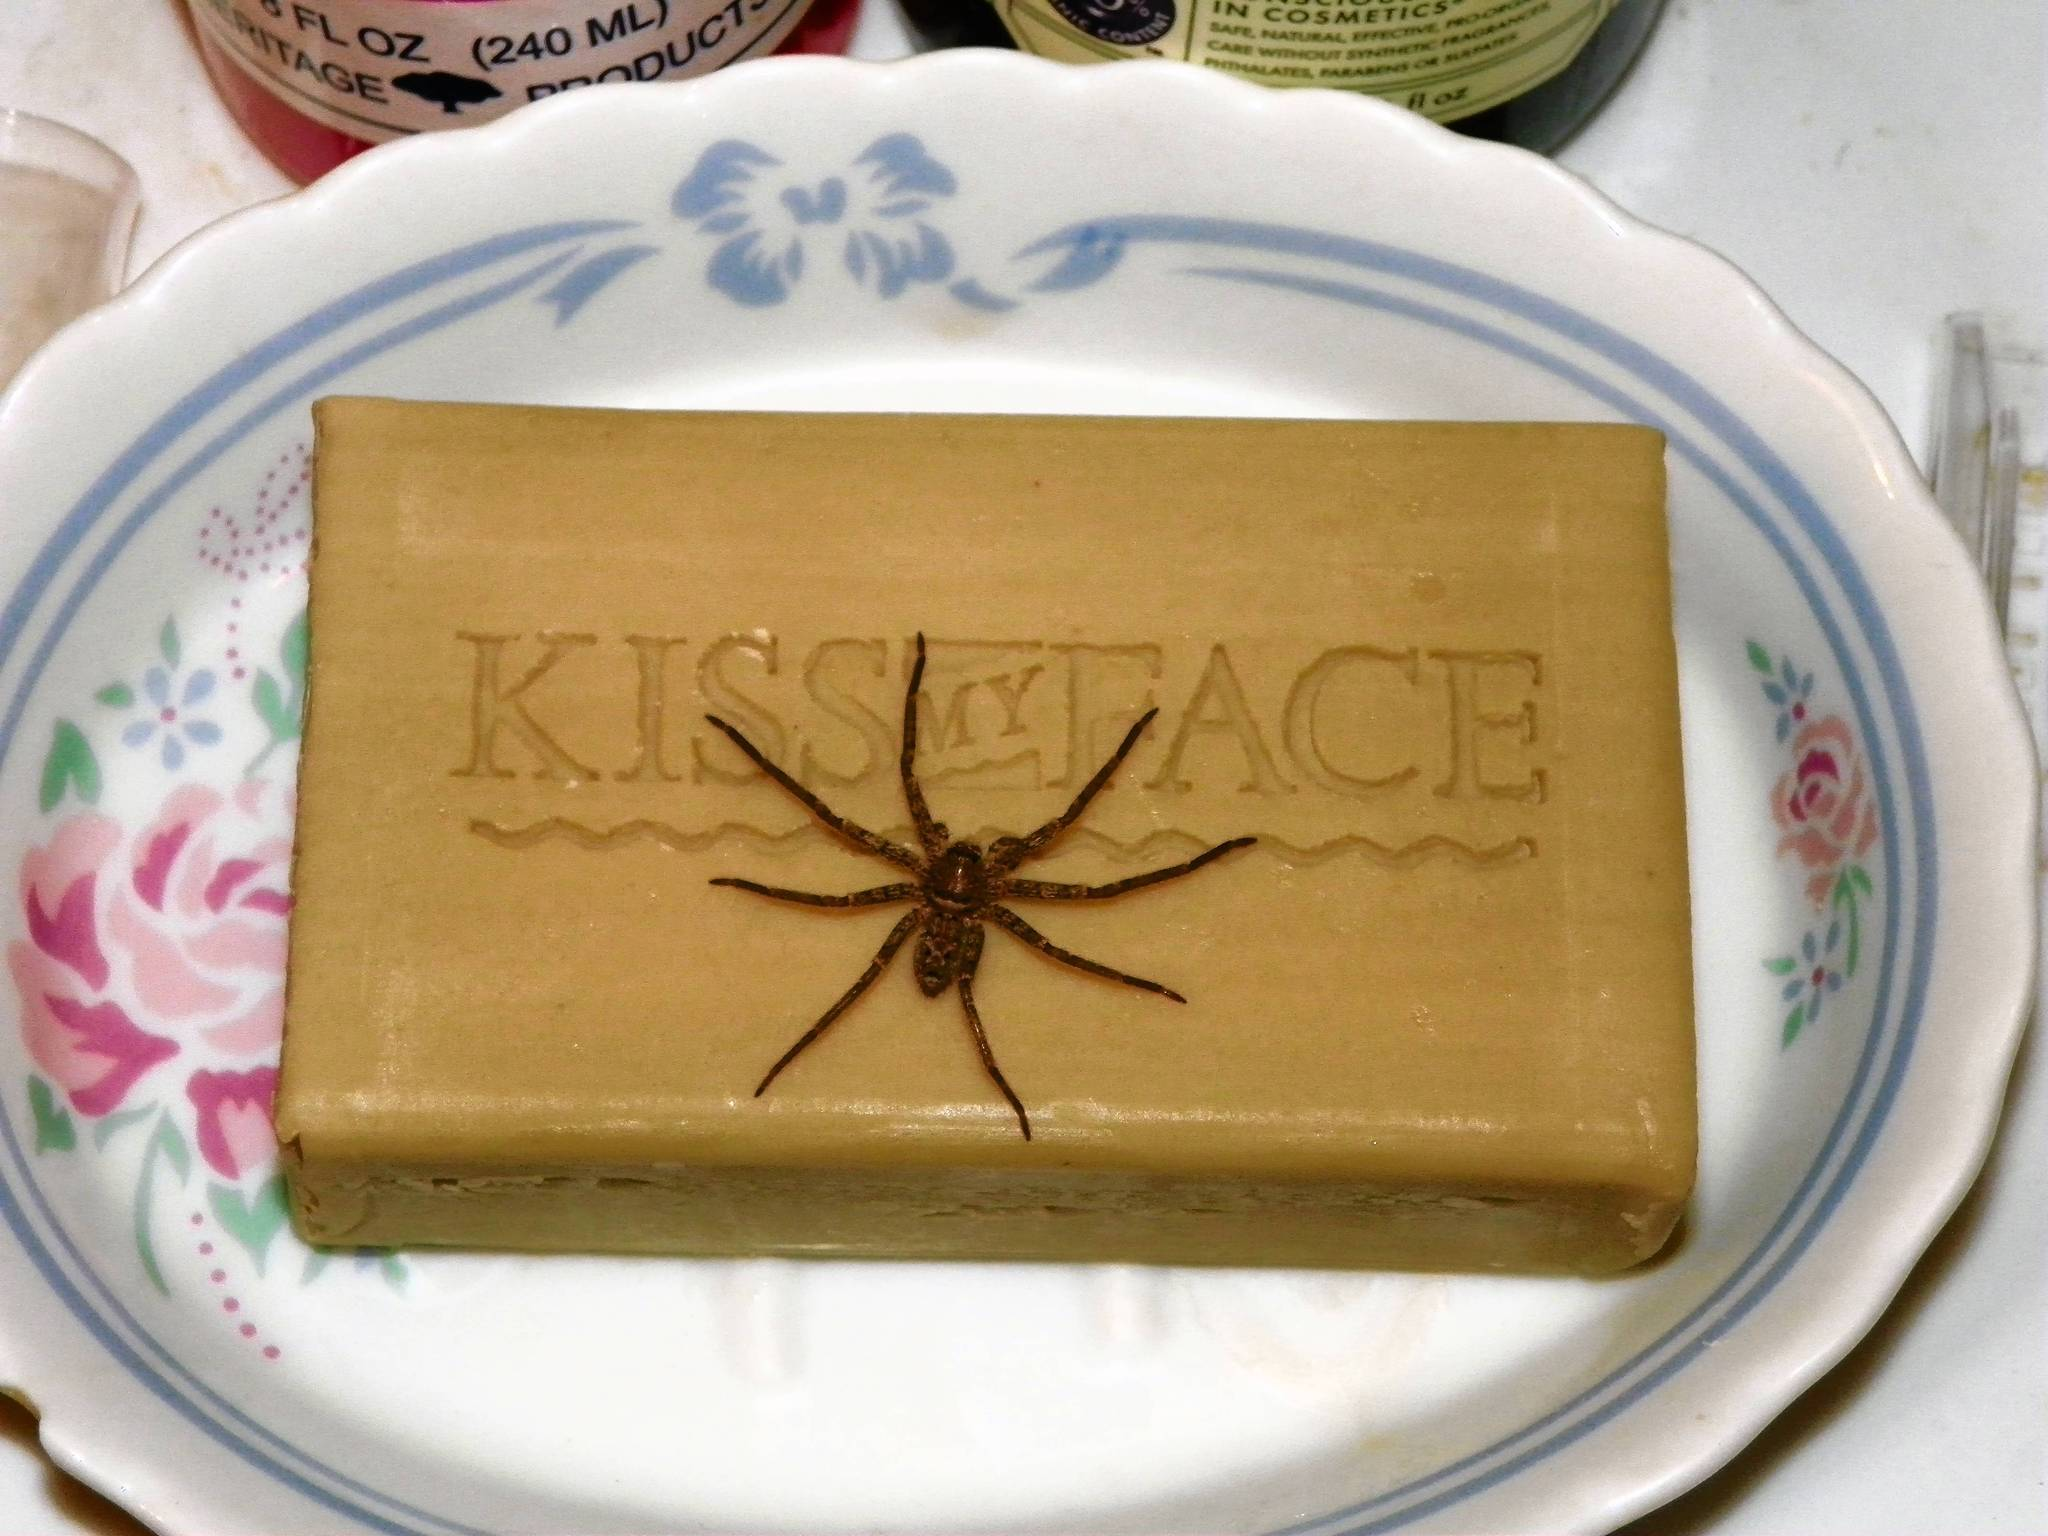 A juvenile huntsman spider waits for prey atop a bar of Kiss My Face soap.